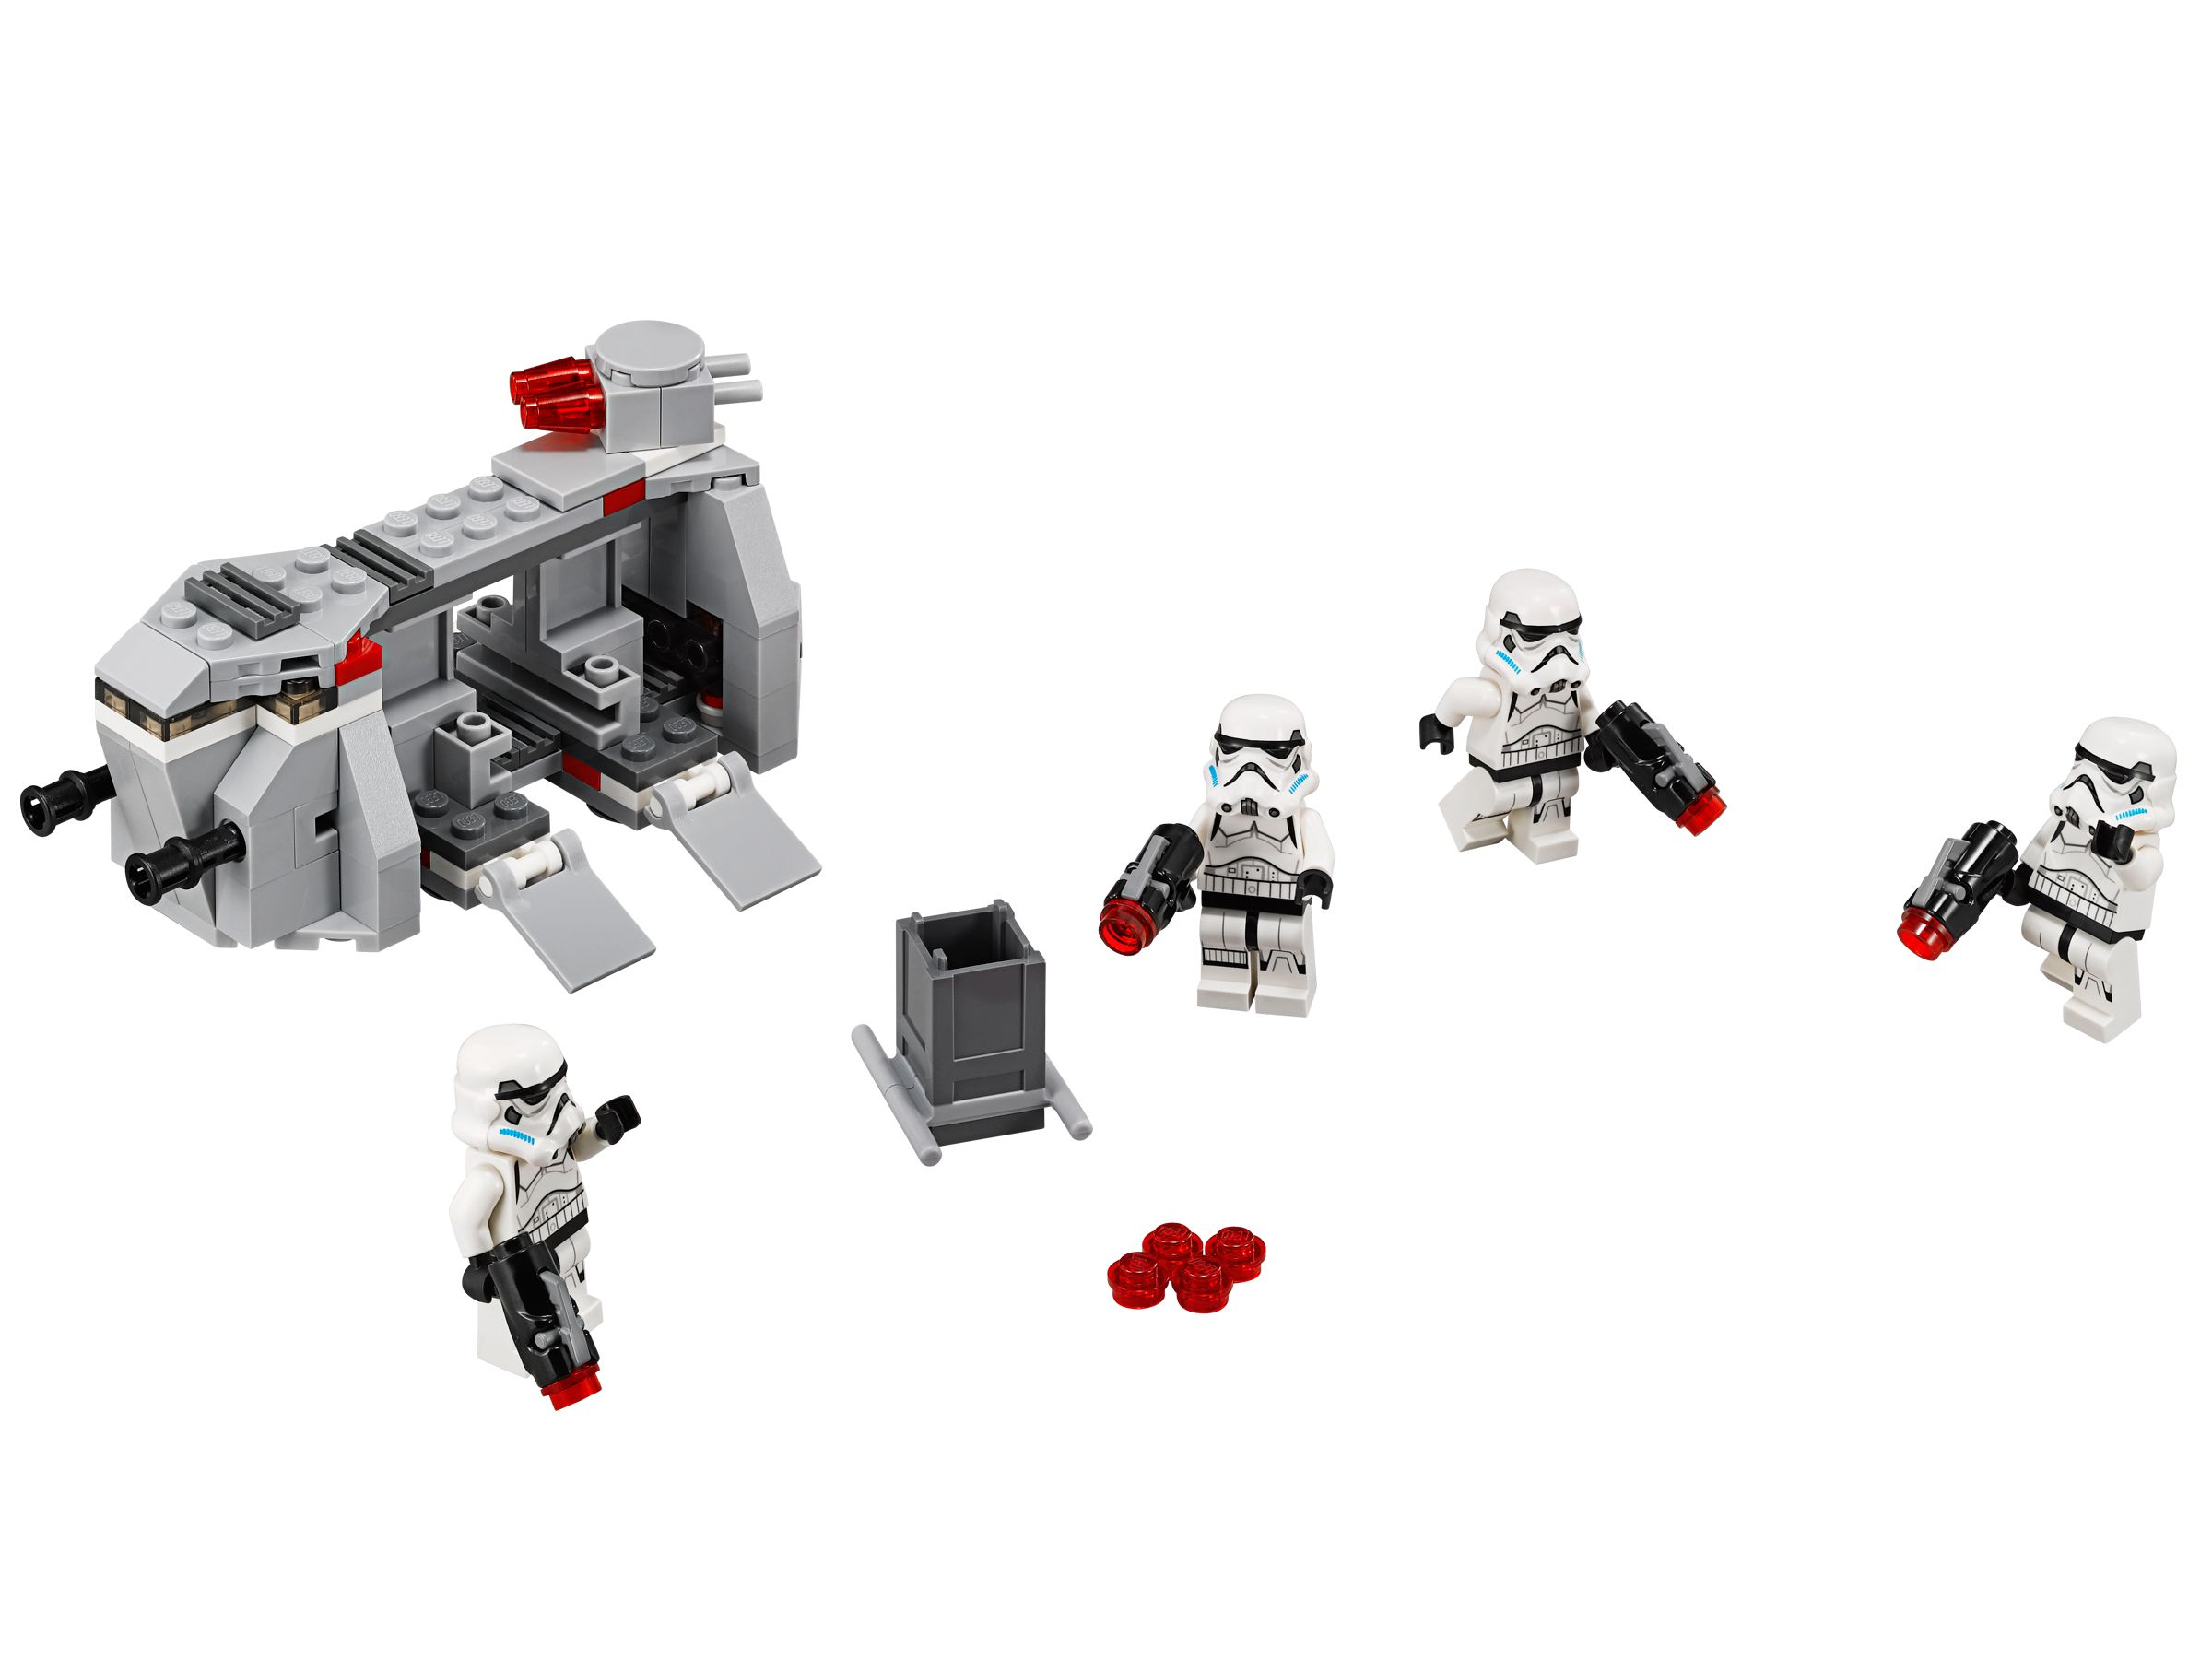 LEGO Star Wars 75078 Imperial Troop Transport LEGO_75078.jpg